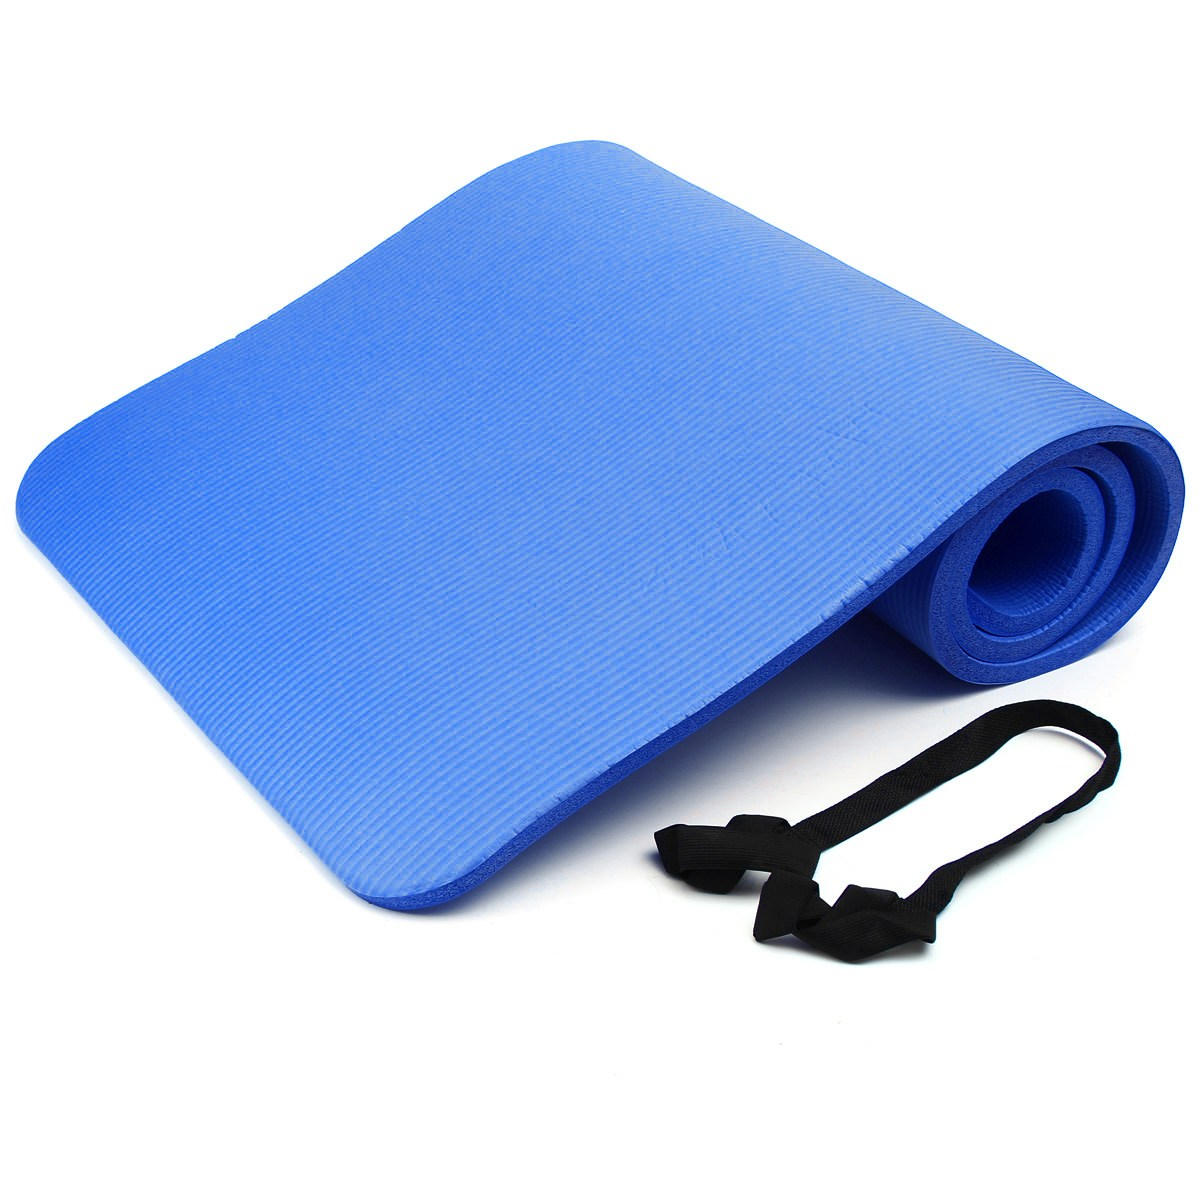 15mm Thick NBR Foam Yoga Mat Soft Yoga Pads Sports Training Exercise non-slip Gym Mat 183 X 61cm for Fitness Body Building iunio yoga mats 15mm fitness mat for body building exercise pilates home gym training folding eva pad outdoor camping yoga mat